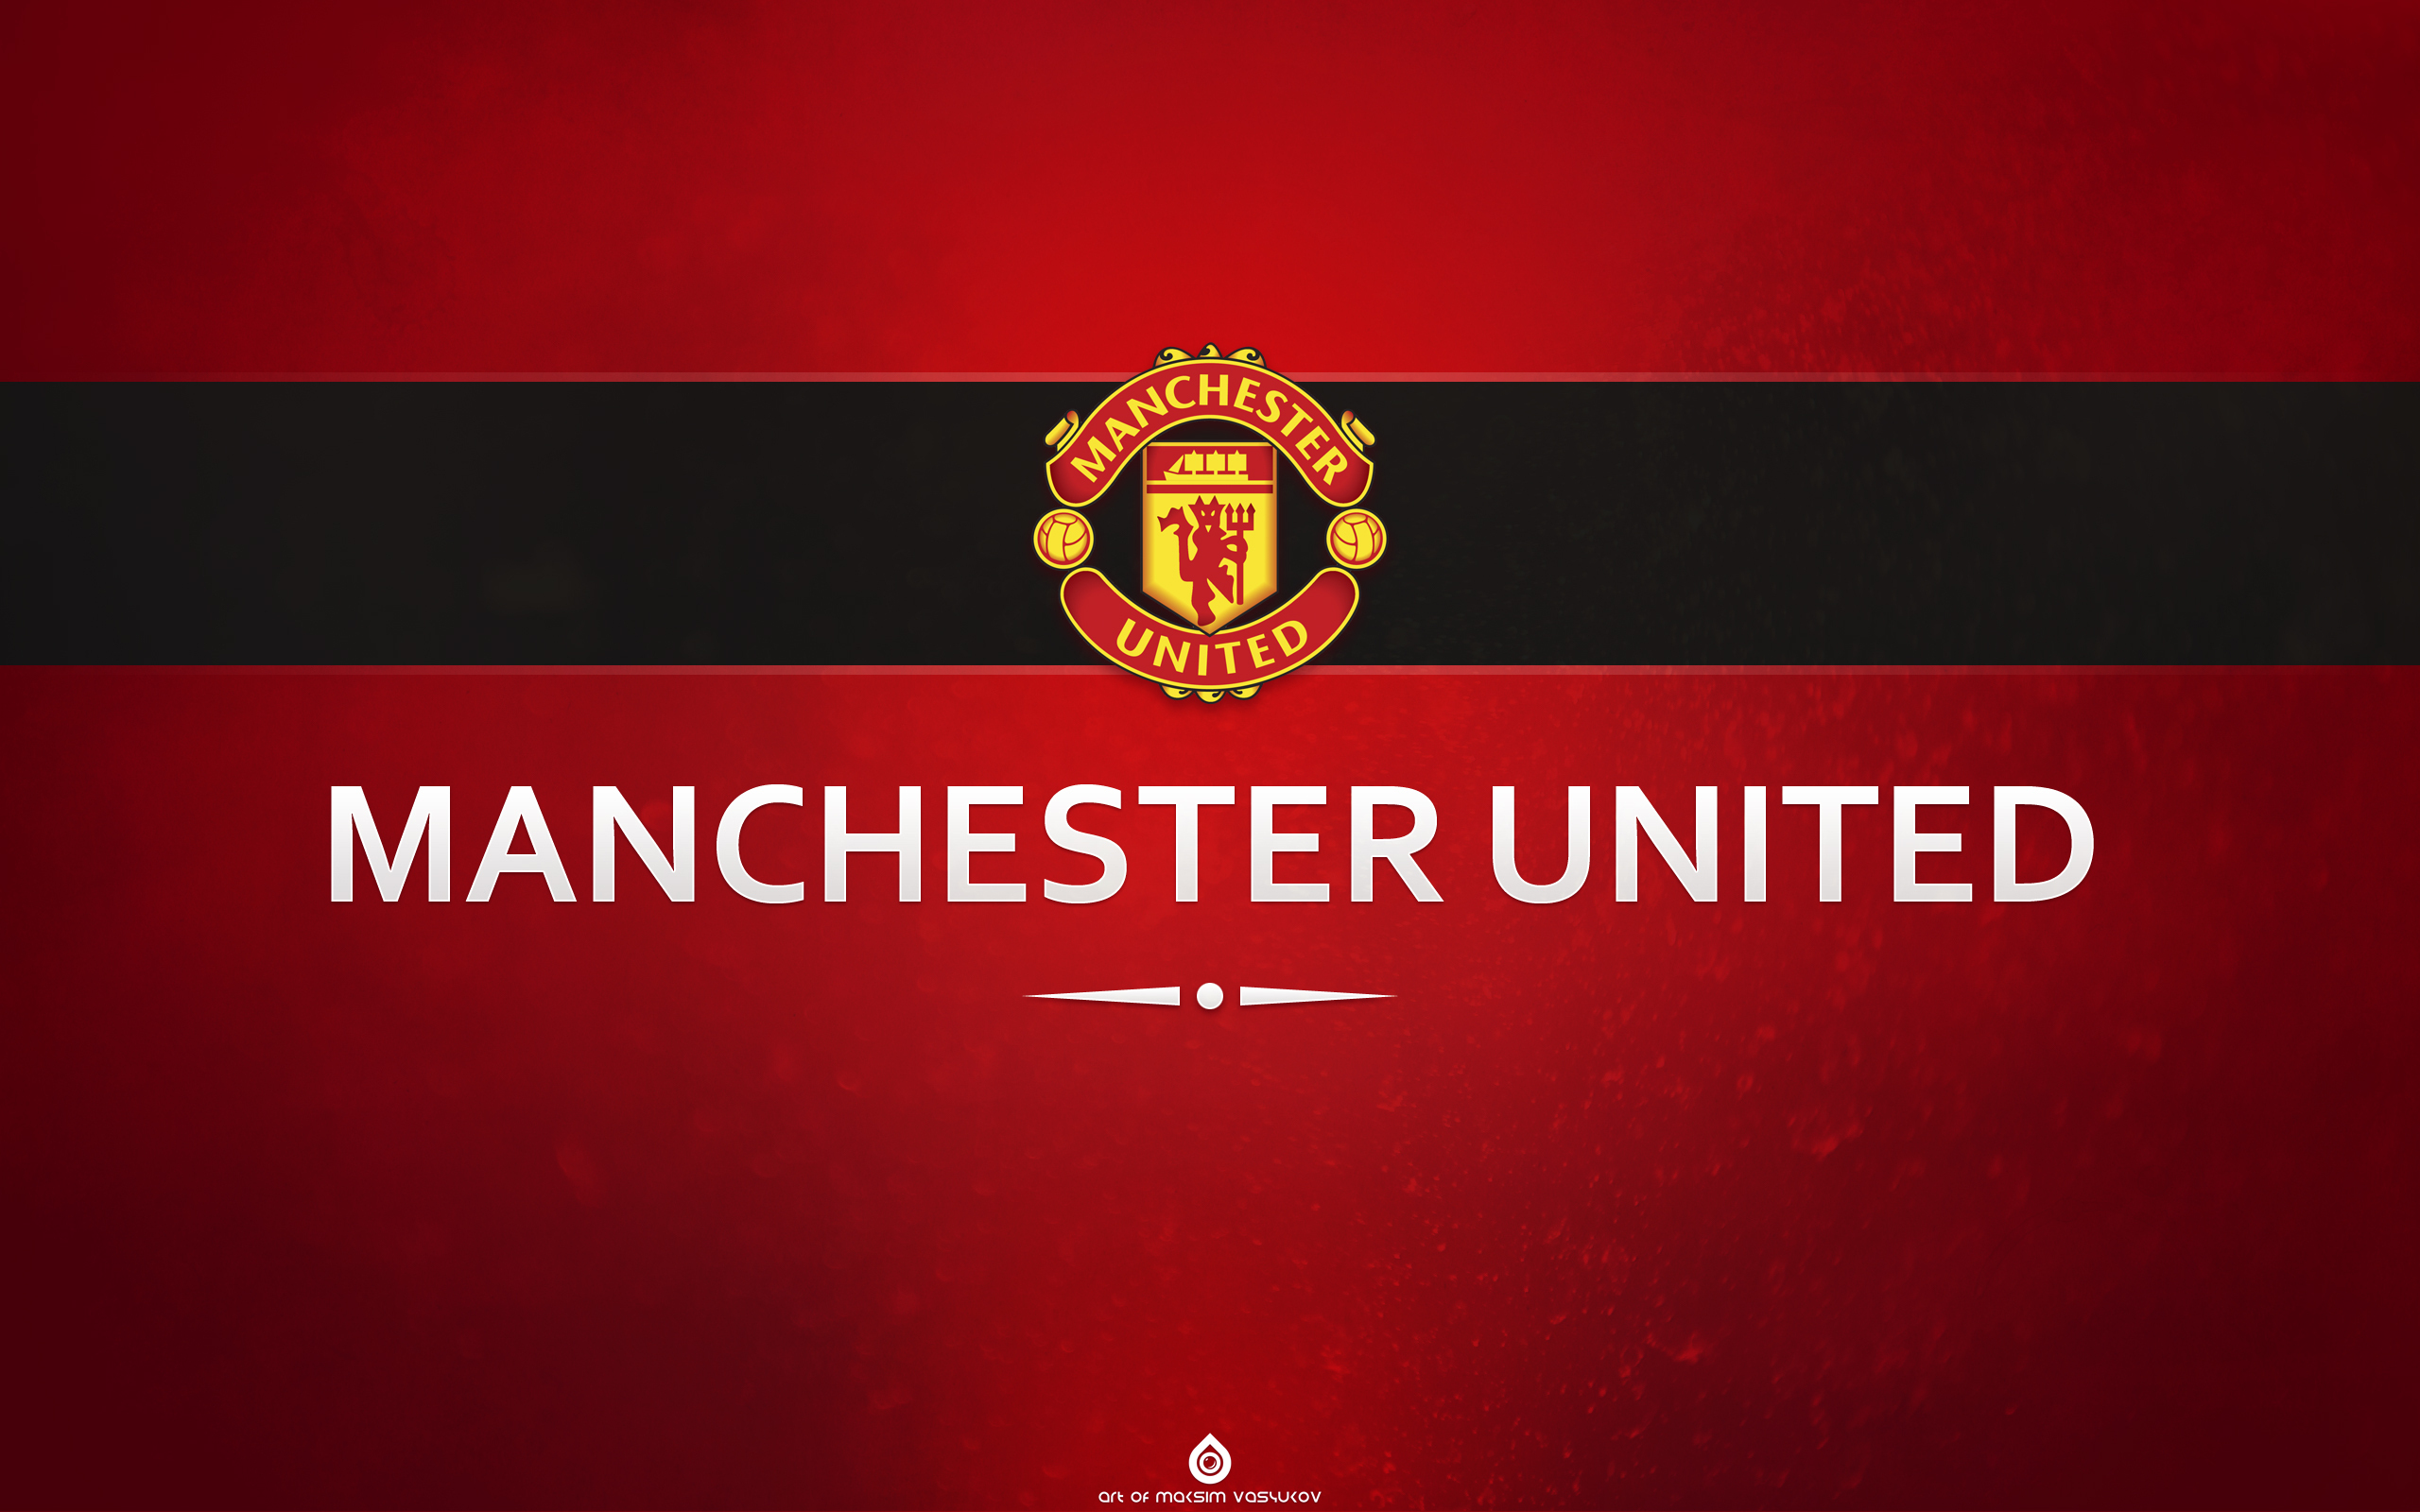 Hd wallpaper manchester united - Download Manchester United Fc Logo Hd Wallpaper 3522 Full Size